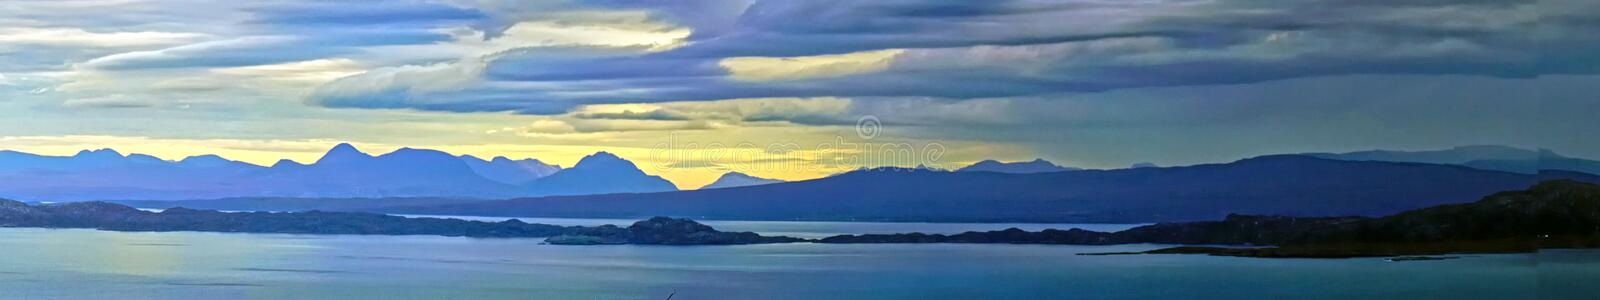 Scottish Islands from Skye in the Hebrides stock photography